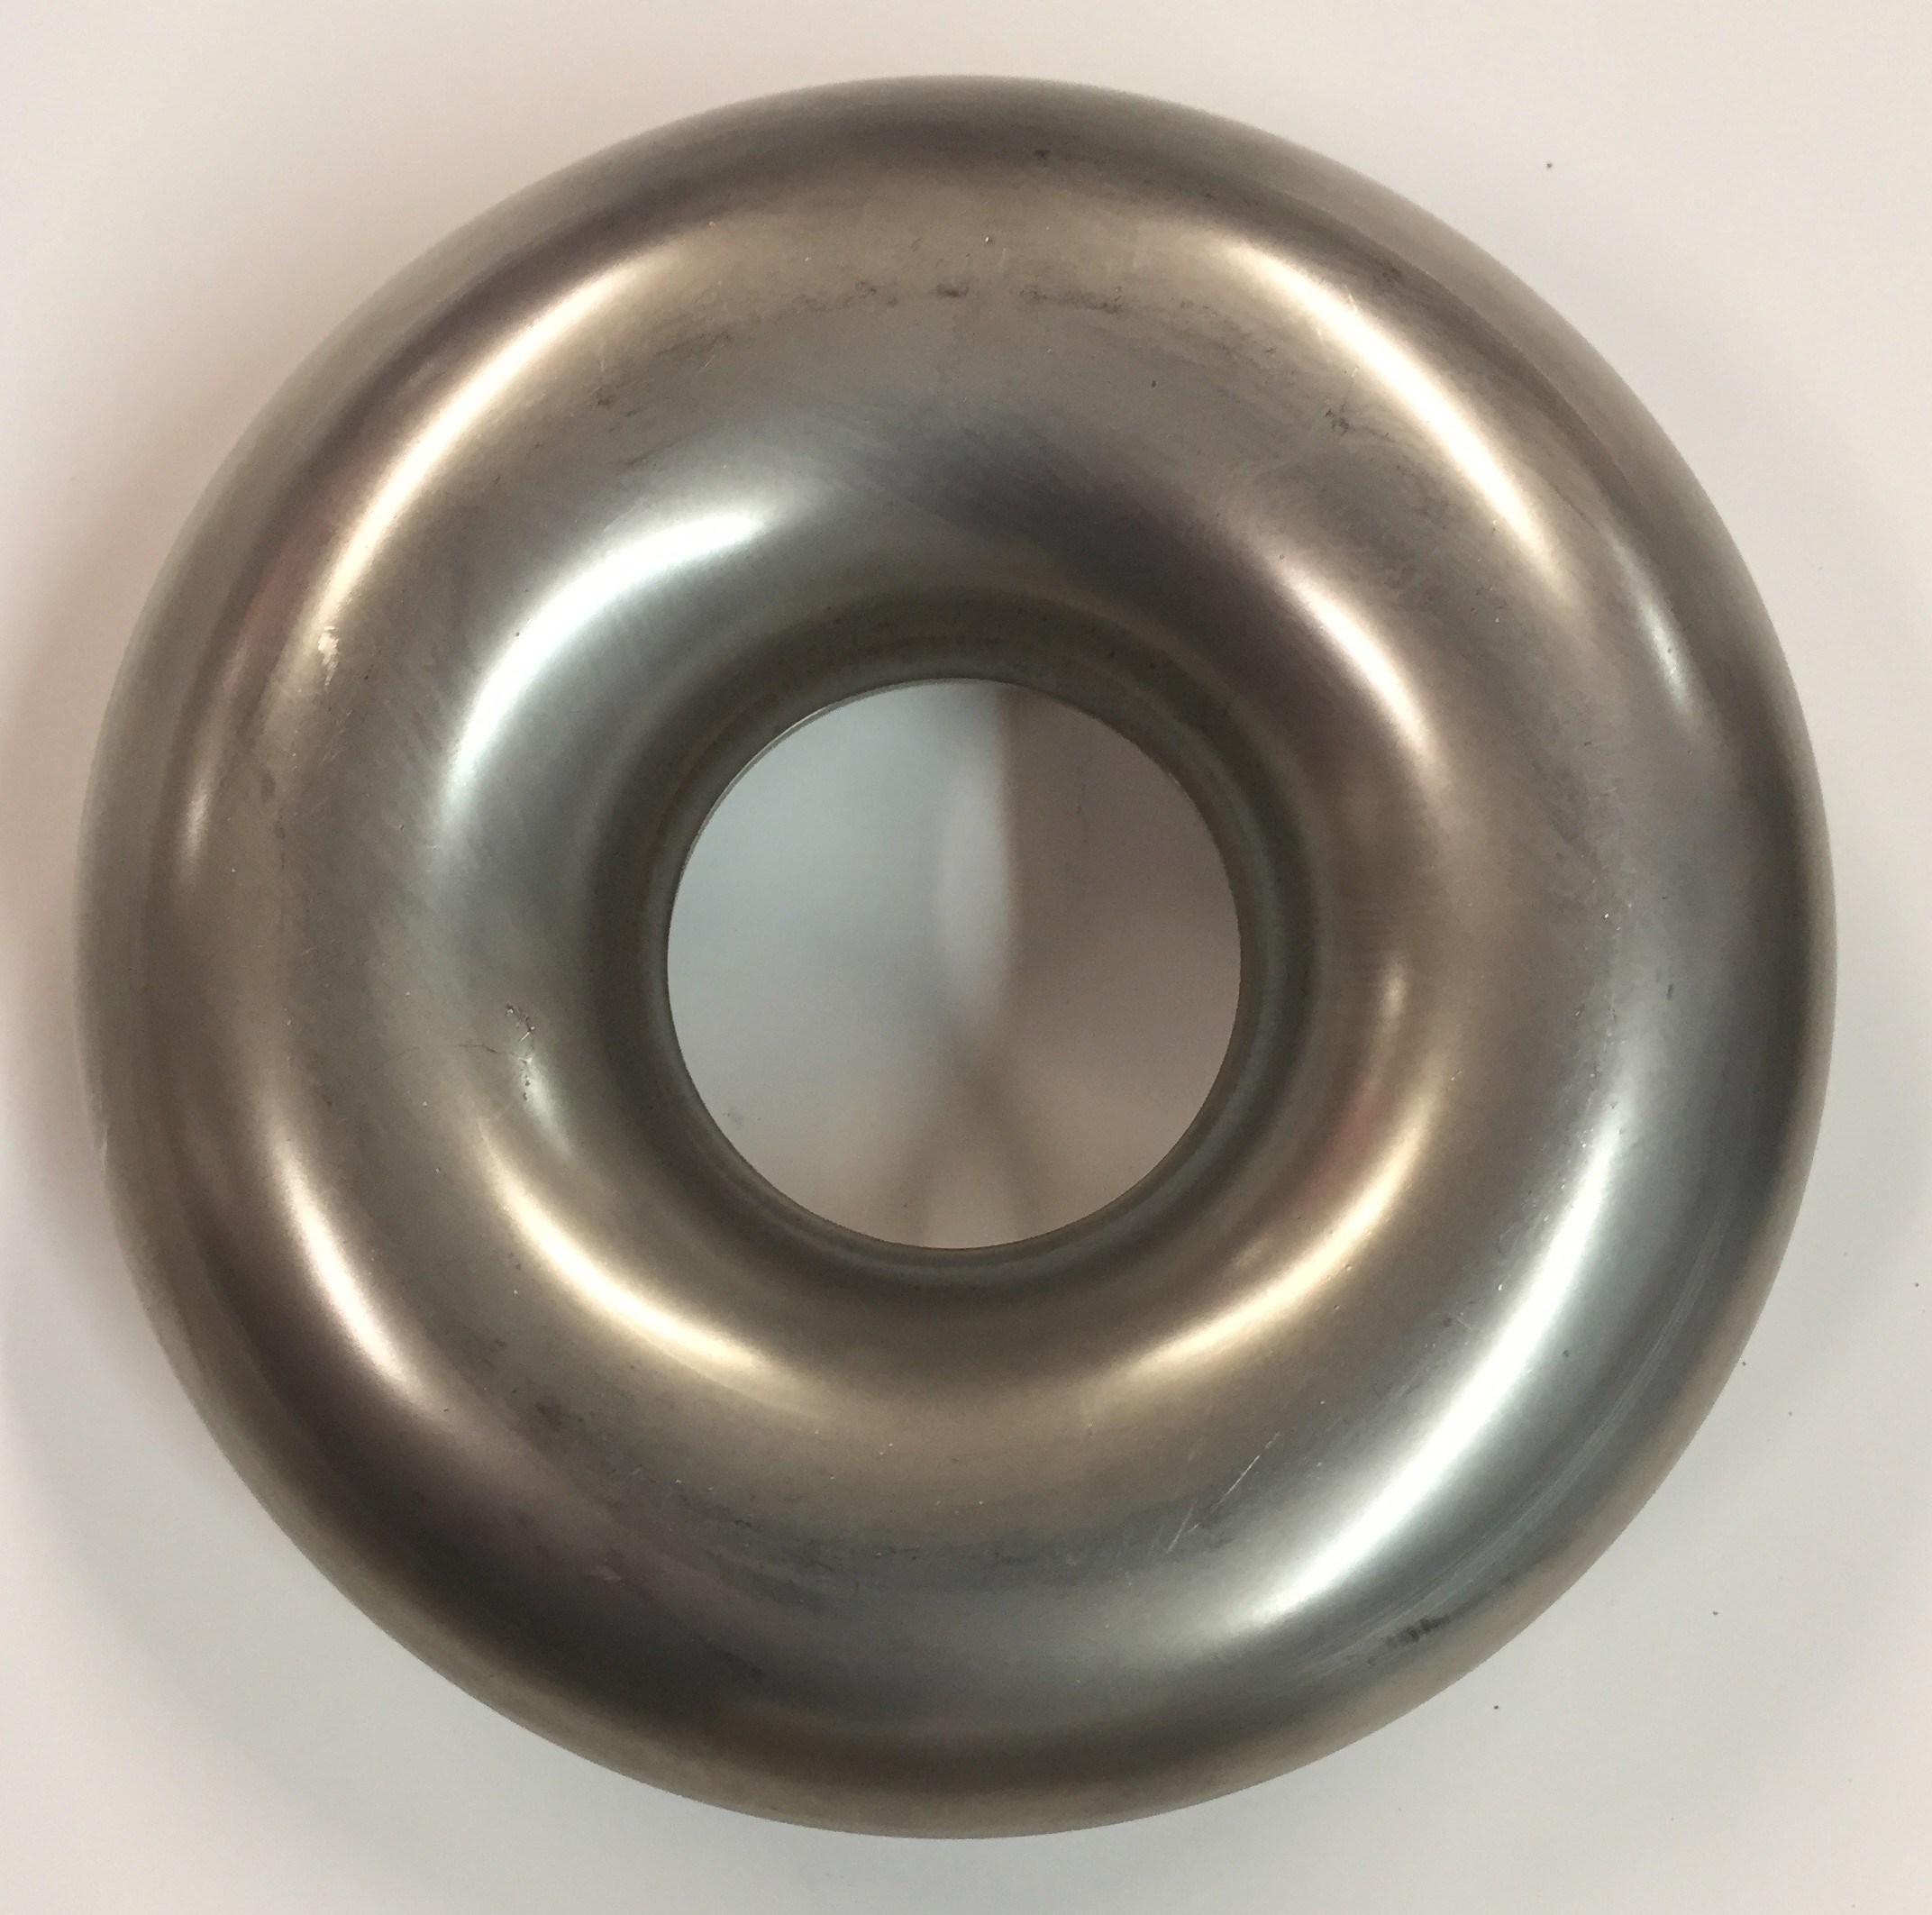 DEEZ Performance Stainless Steel Donut 3 1/2""